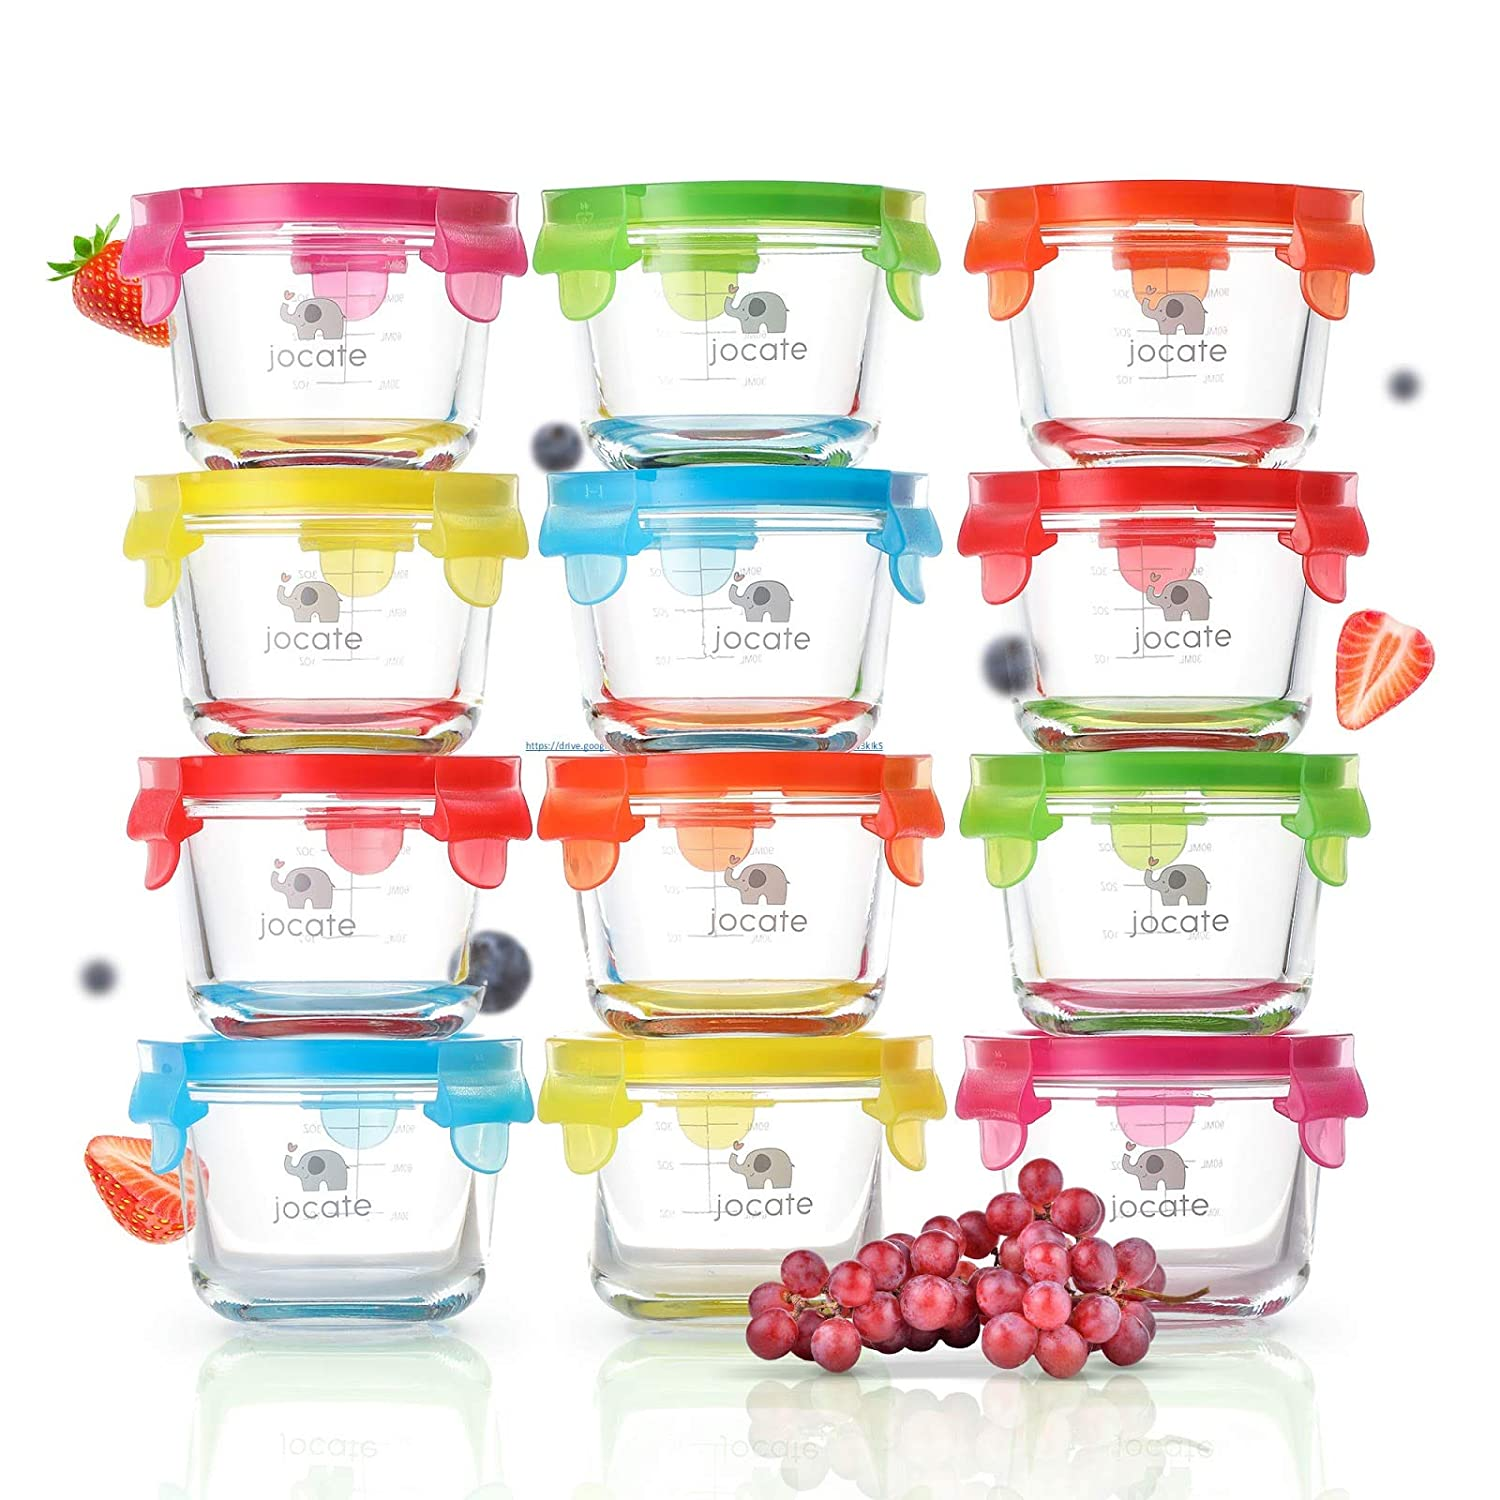 Glass Baby Food Storage Containers | 12 Set | Leakproof 4 oz Baby Food Jars | Freezer Storage | Dishwasher, Oven, Microwave Safe | Reusable Small Baby Food Containers | for Infant/Baby